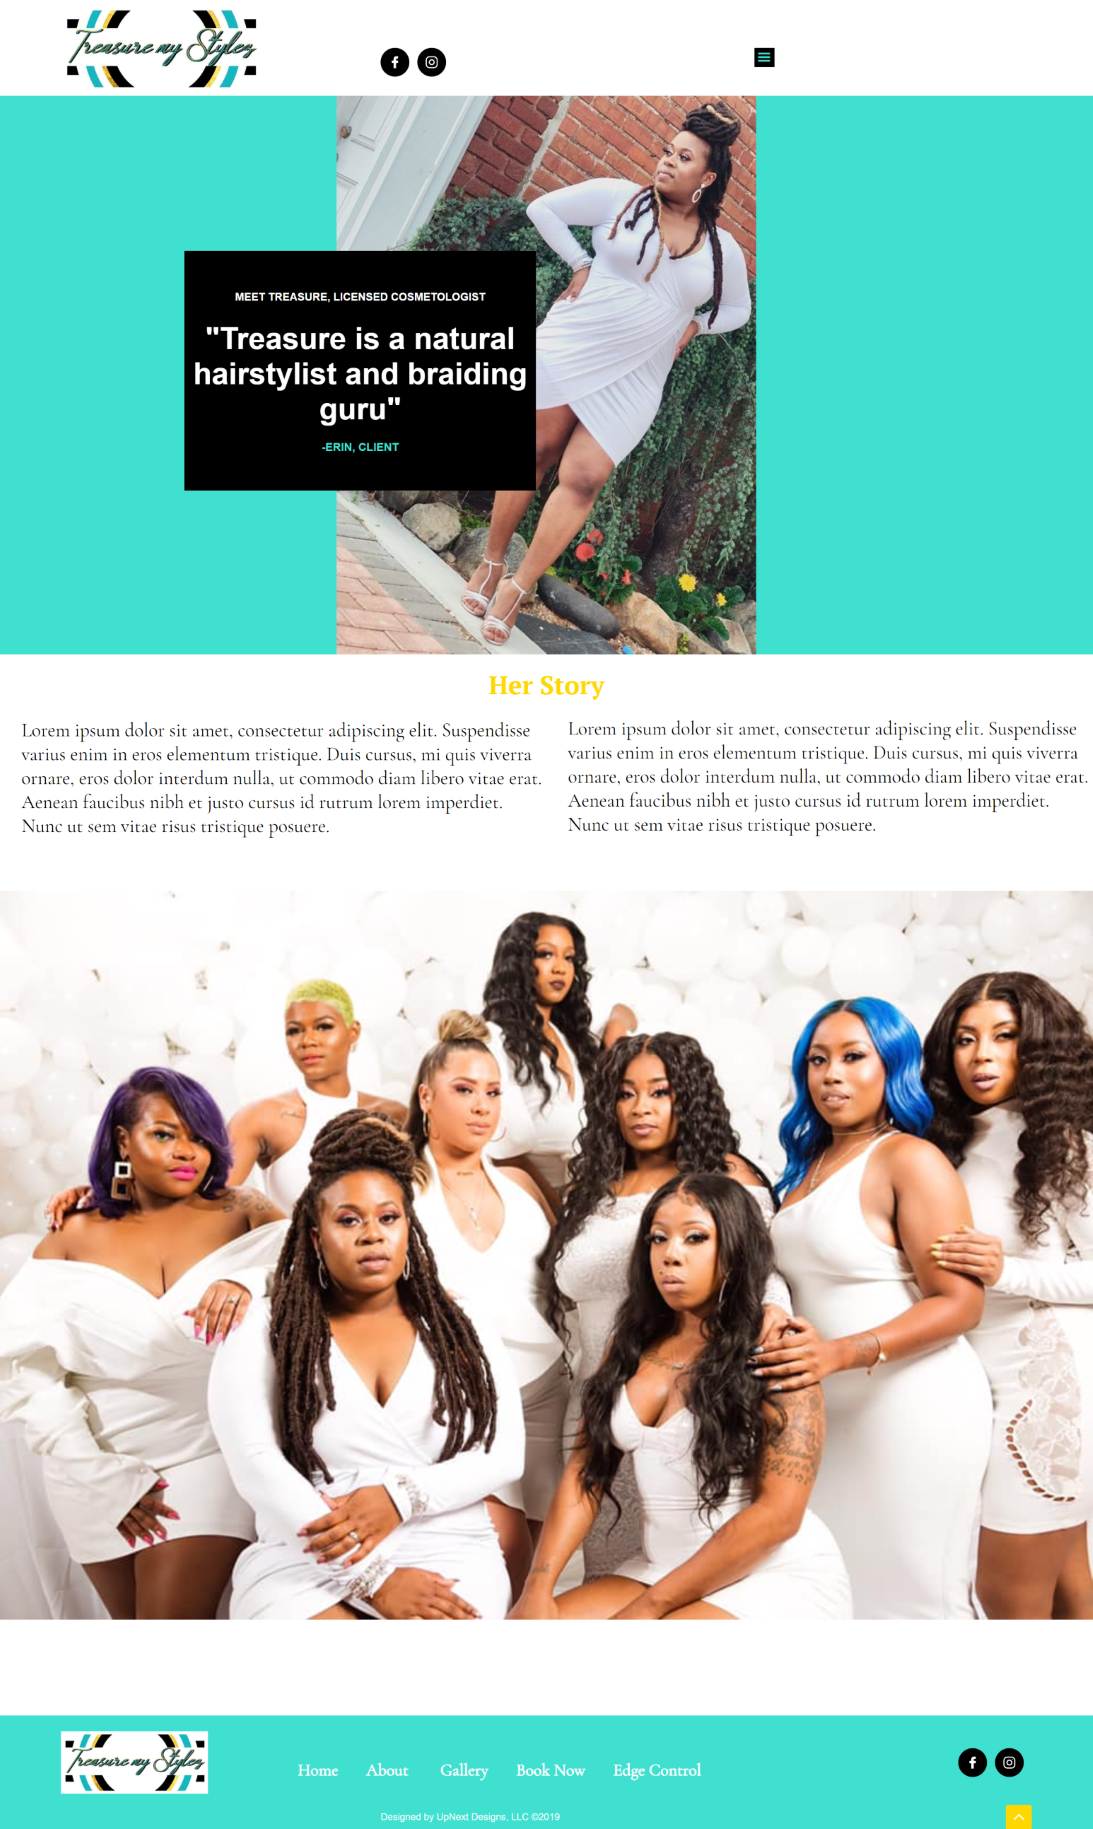 Treasure My Stylez About Page, Responsive Web Design by UpNext Designs LLC